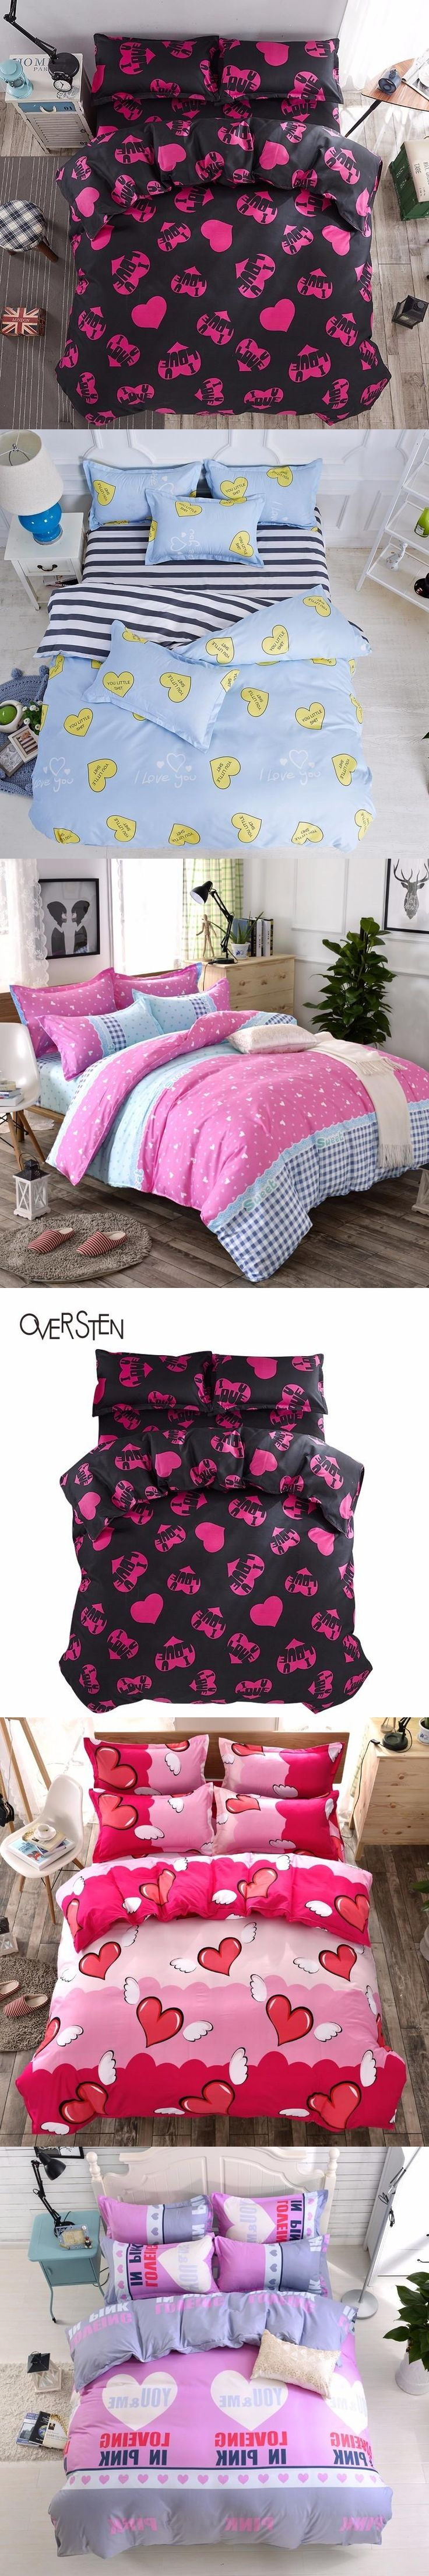 oversten dobby style double single bedding set twin queen king size duvet cover set geometric pattern